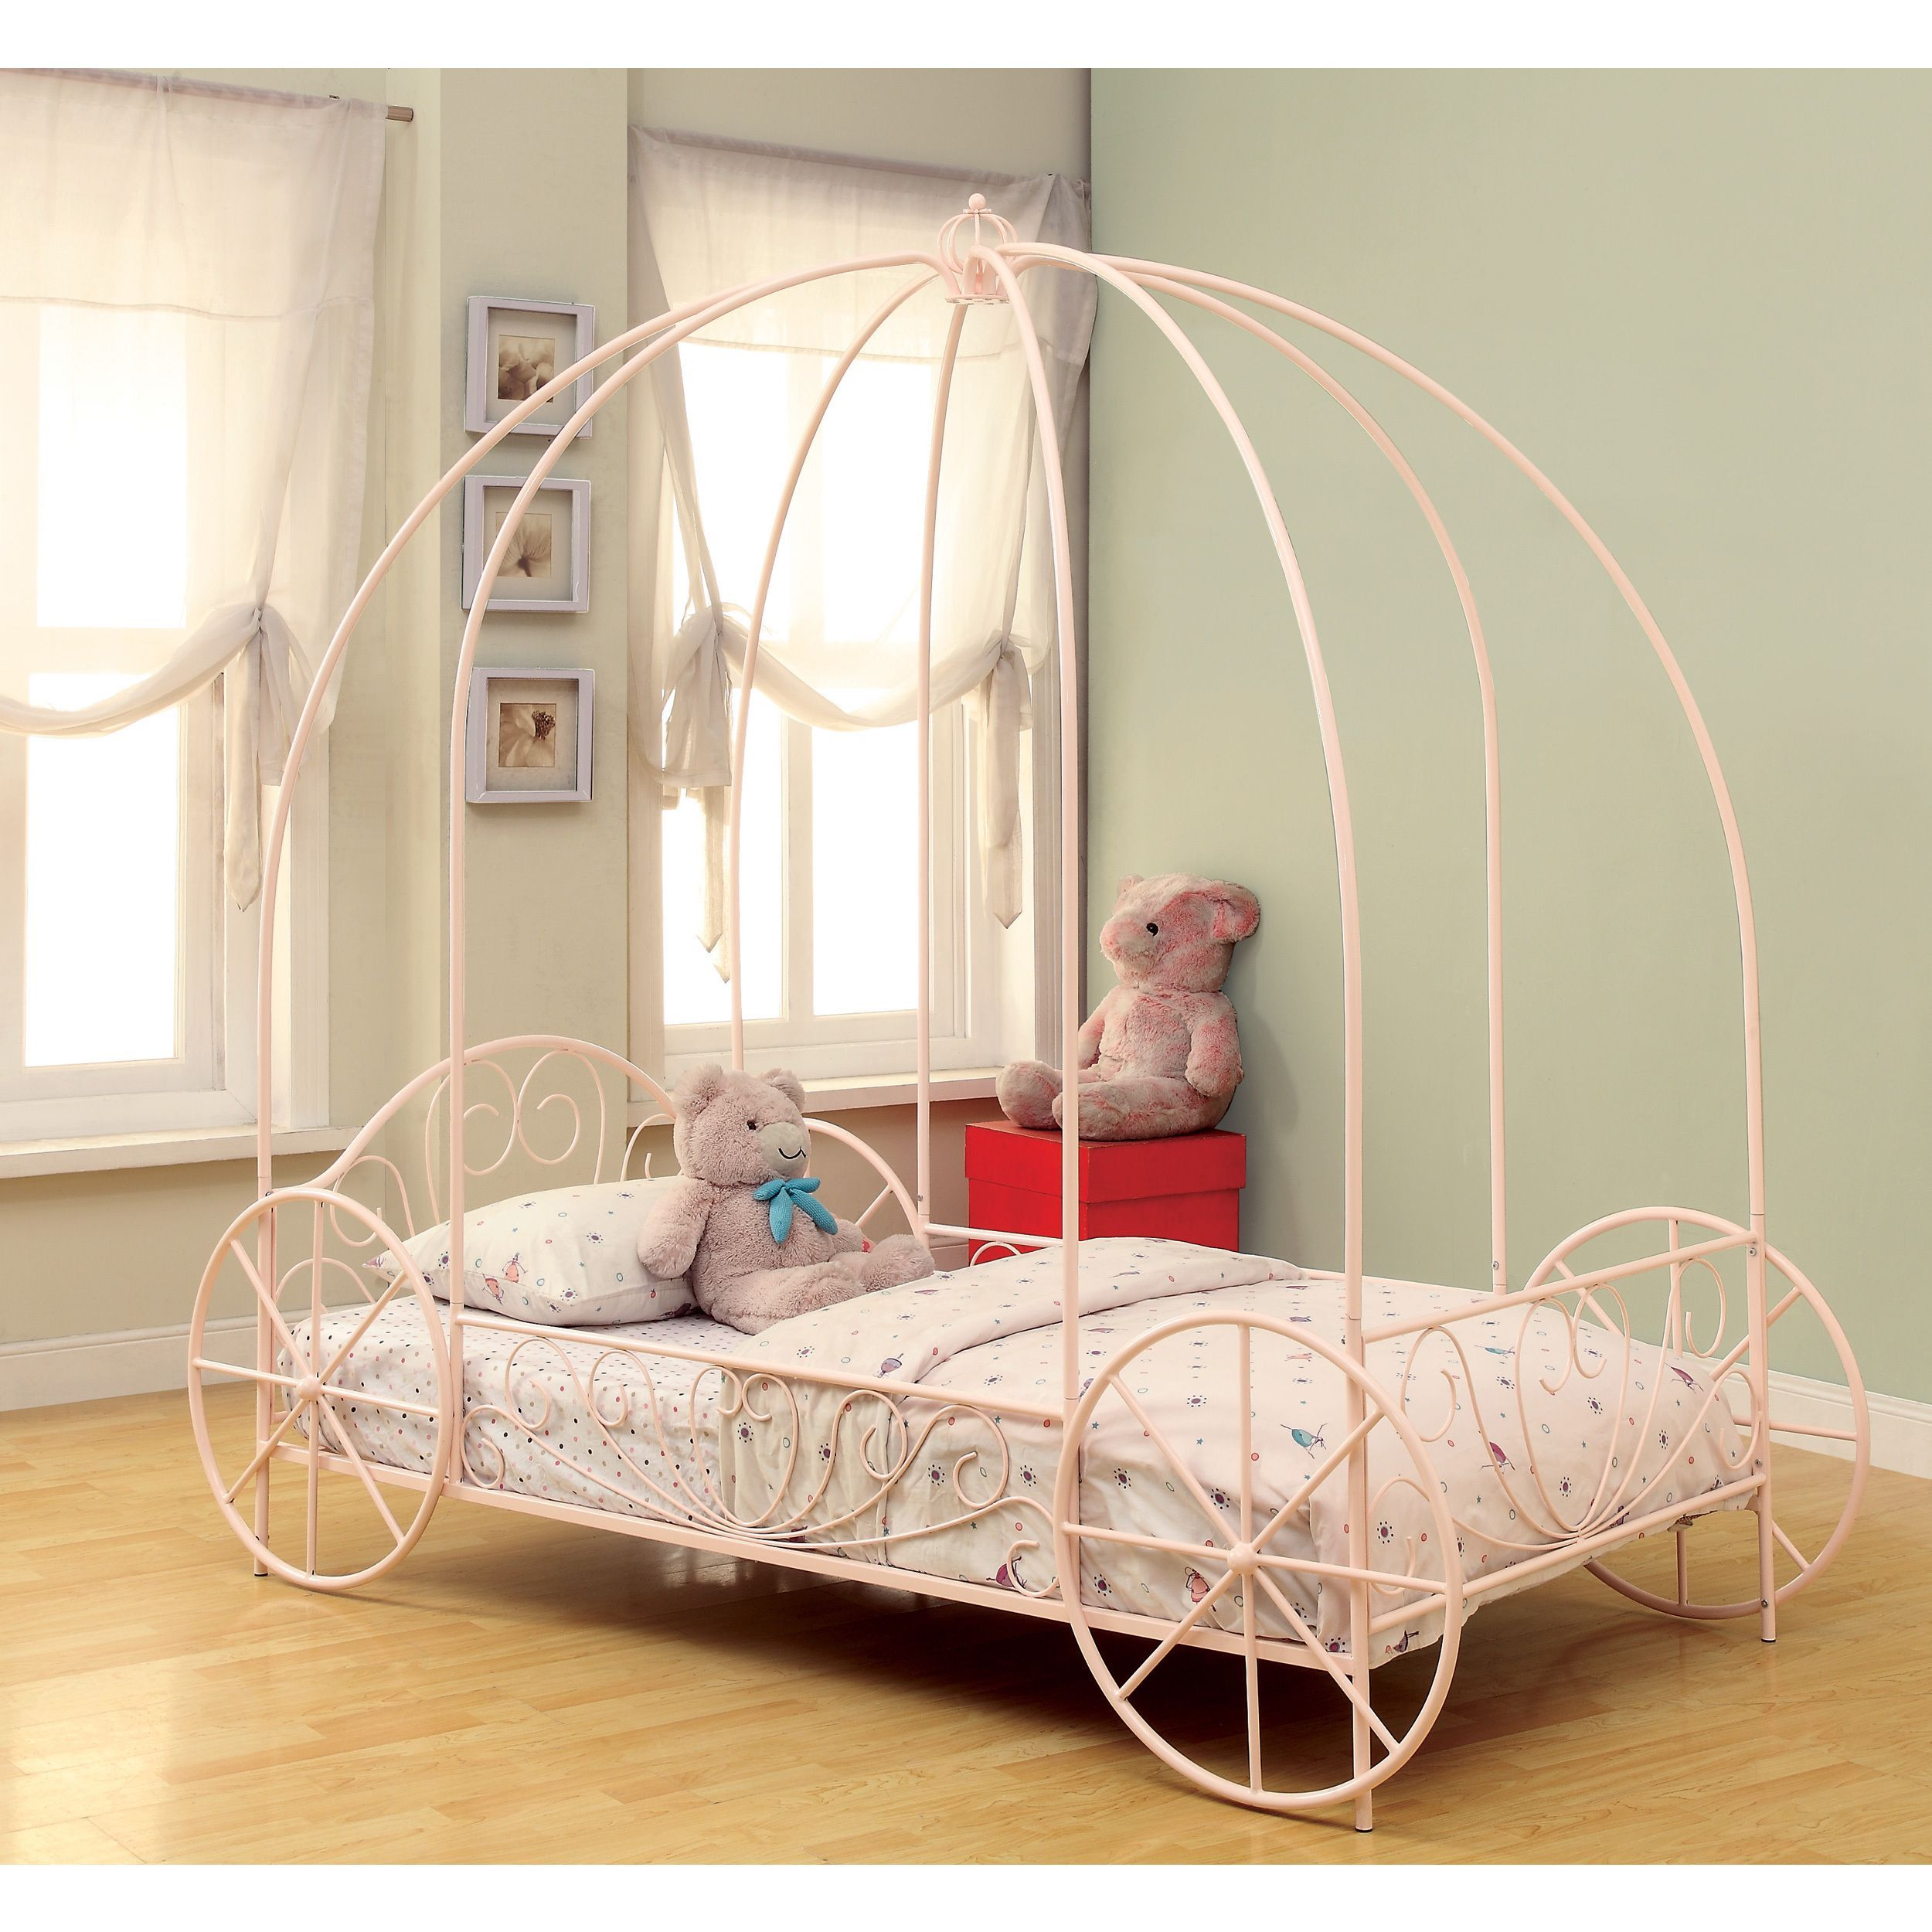 Coaster Company Princess Pink Canopy Twin Bed (Twin BED) | Pinterest